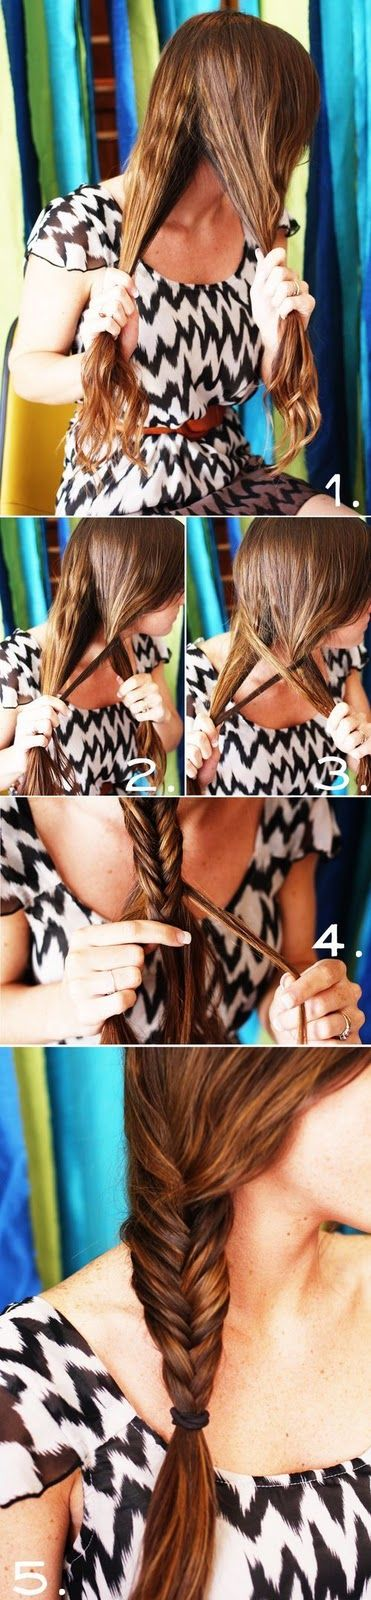 DIY: Fishtail Braid.diy fishtail braid hairstyle hair style hairdo style beauty